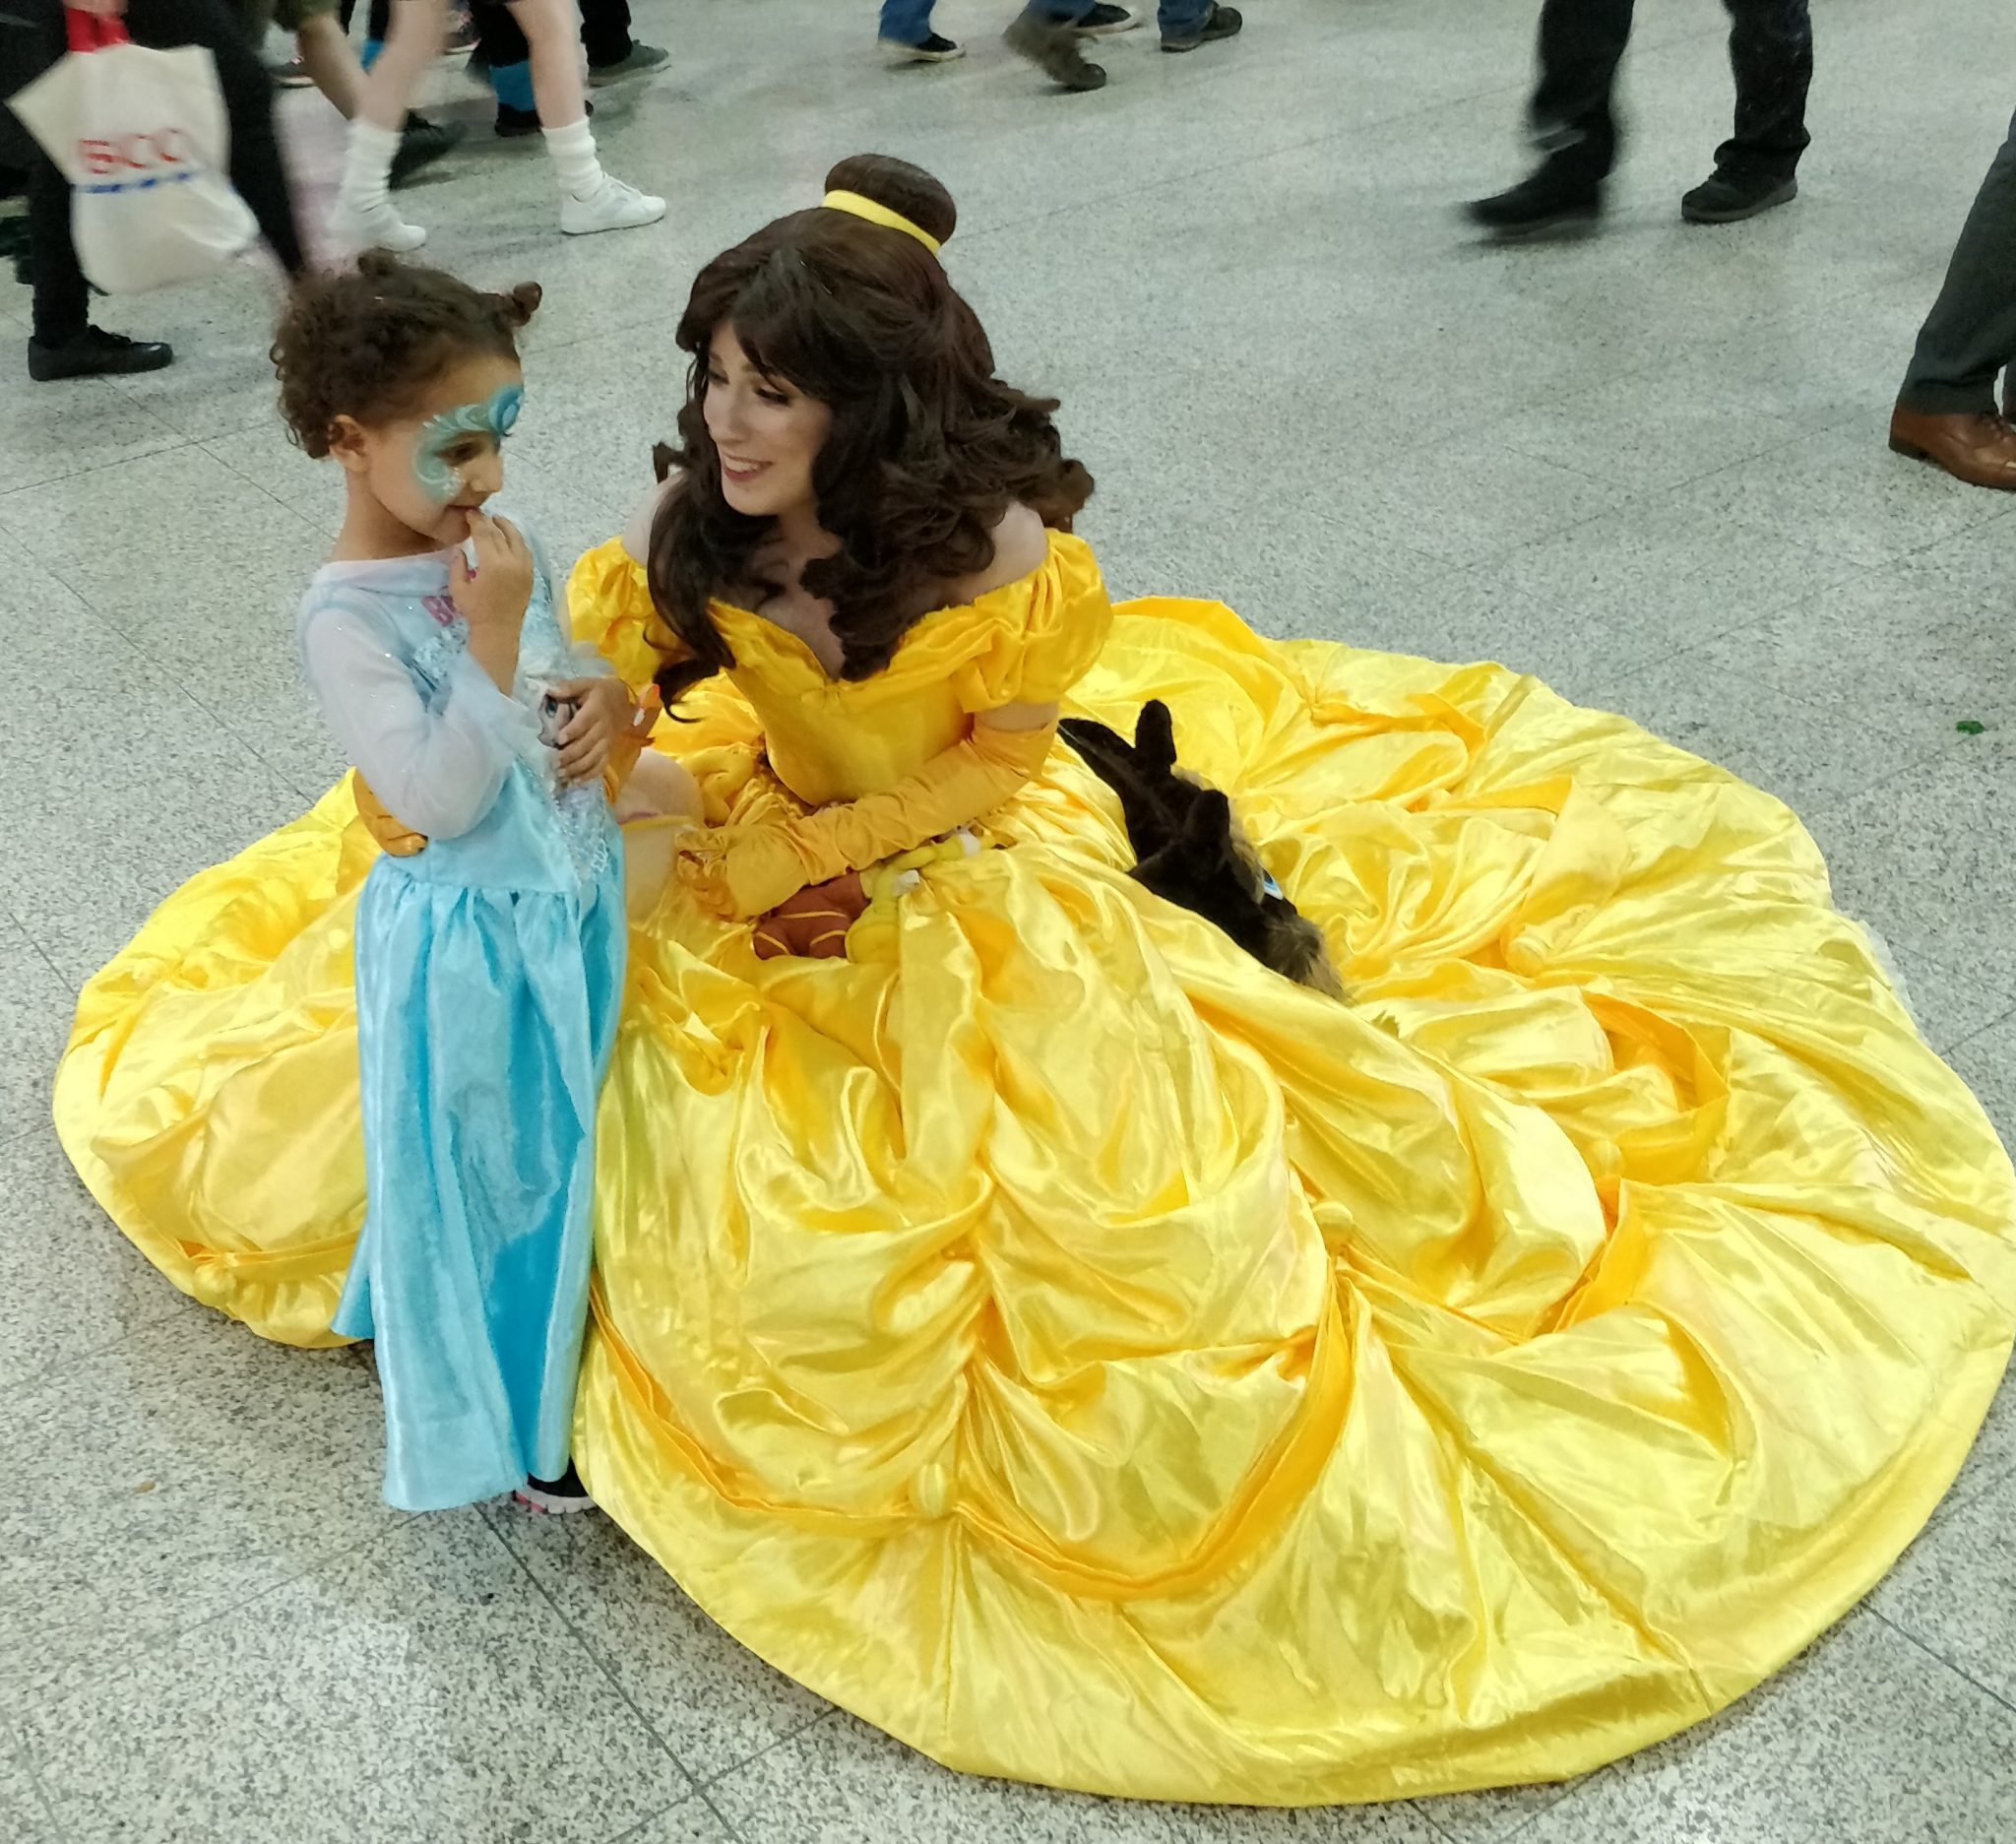 Meeting a Disney Princess can be daunting